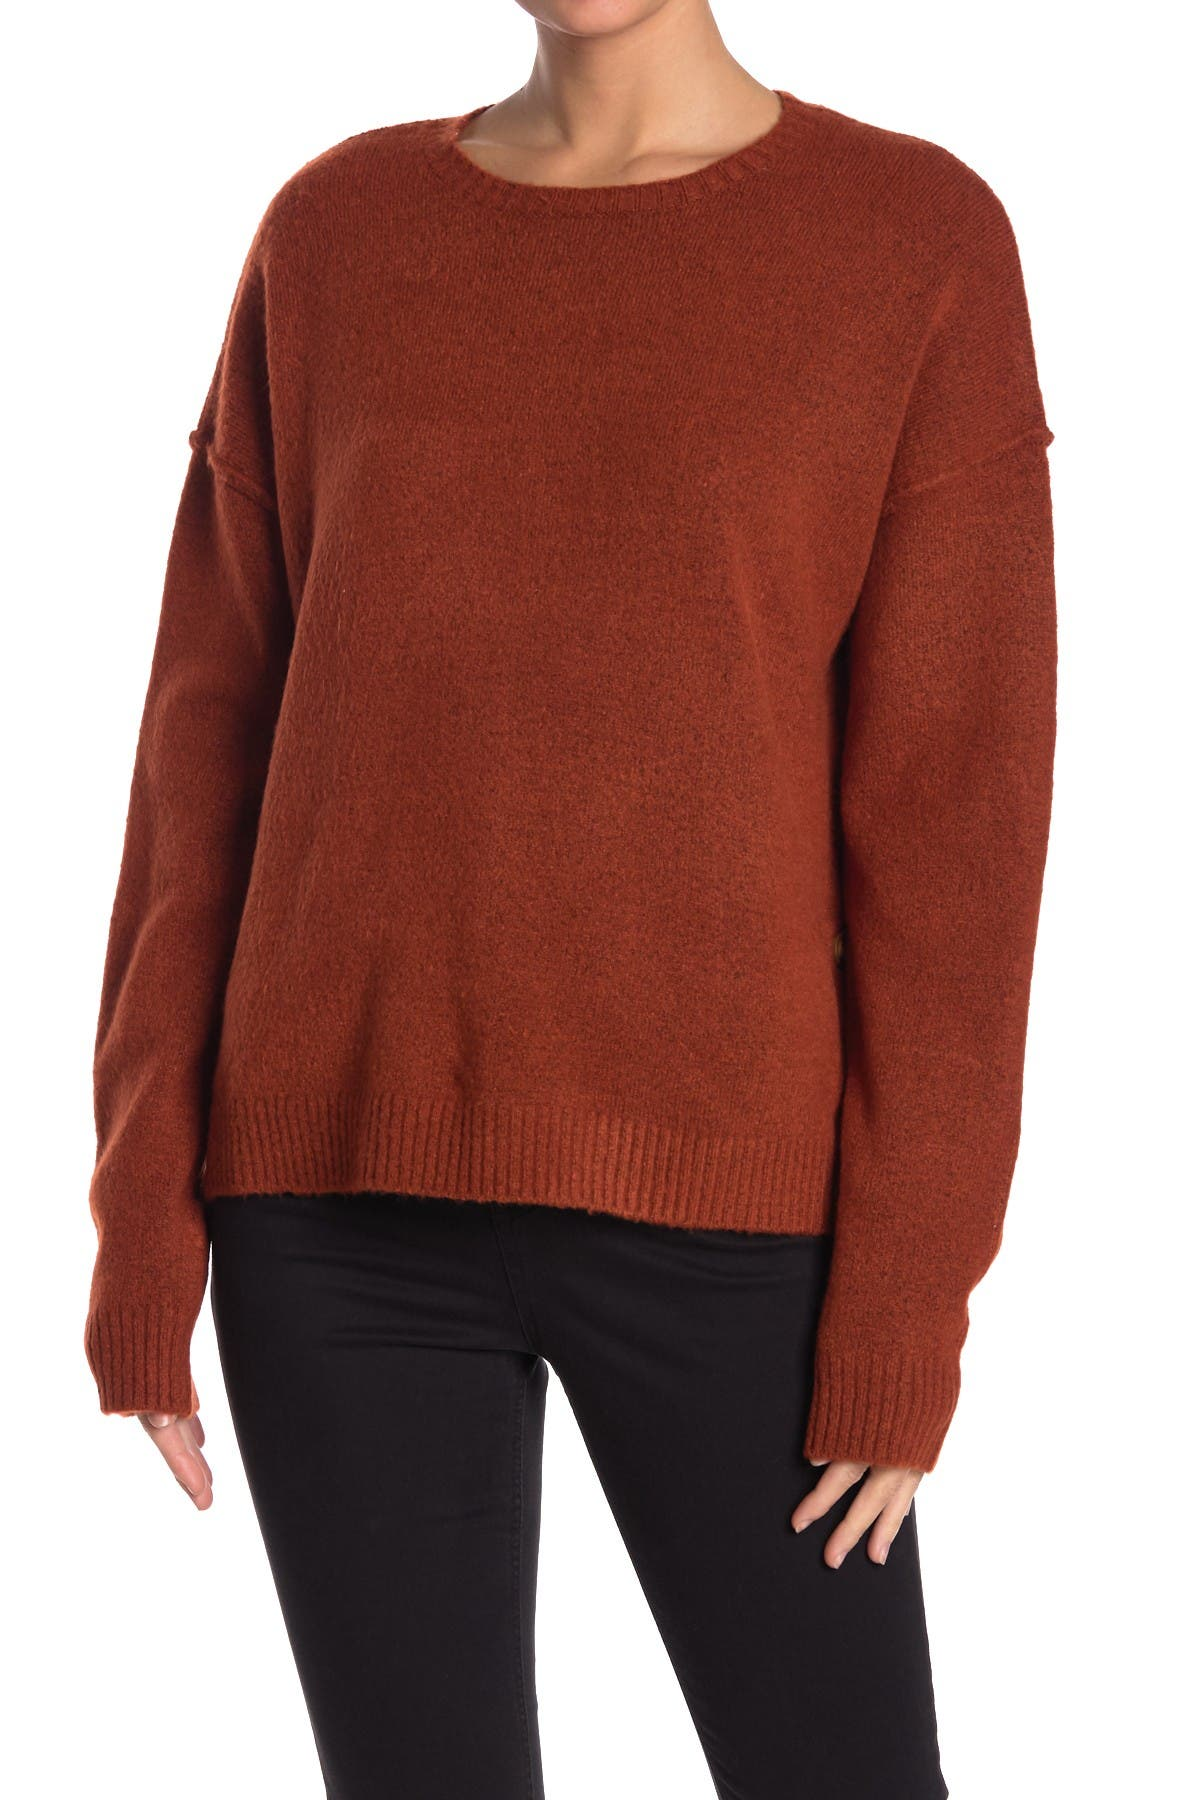 Image of SUPPLIES BY UNIONBAY Angie Side Button Pullover Sweater